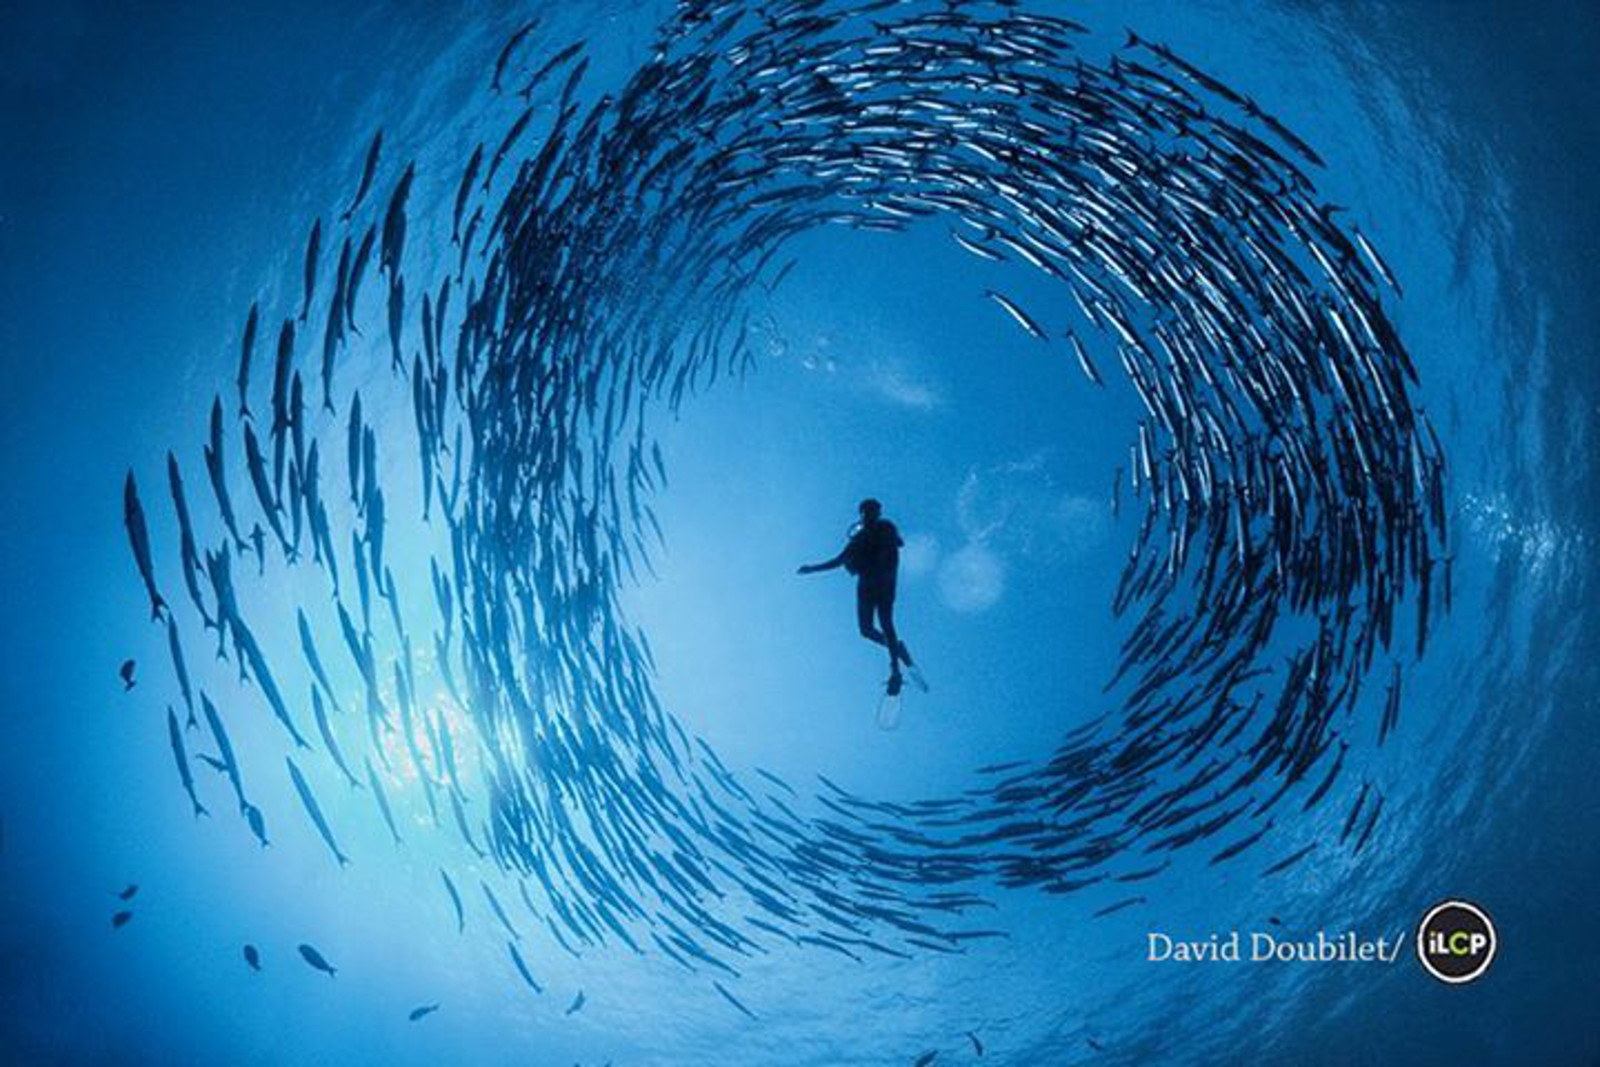 Stunning Image Foreshadows the Role We Play in the Future of the World's Oceans